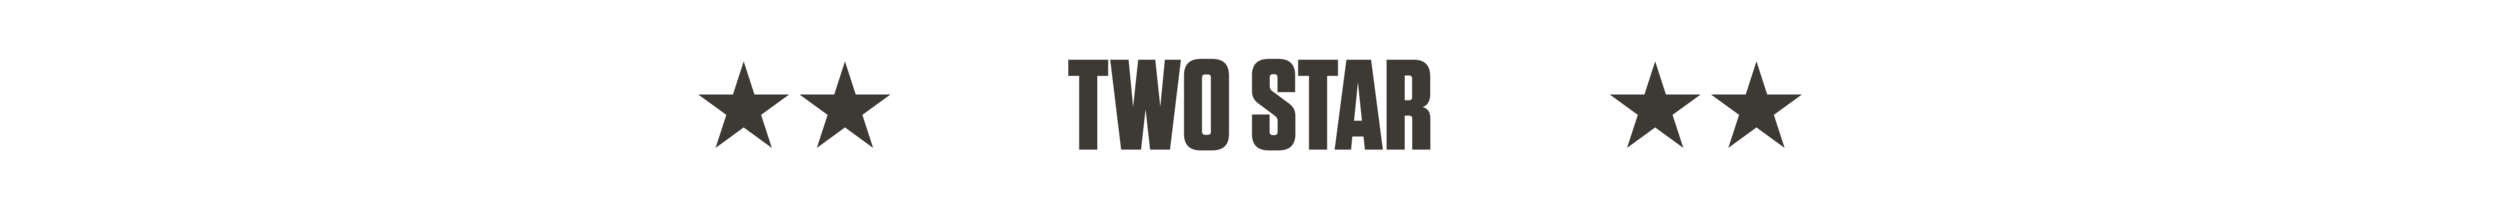 Sponsor Stars_Two Star.png